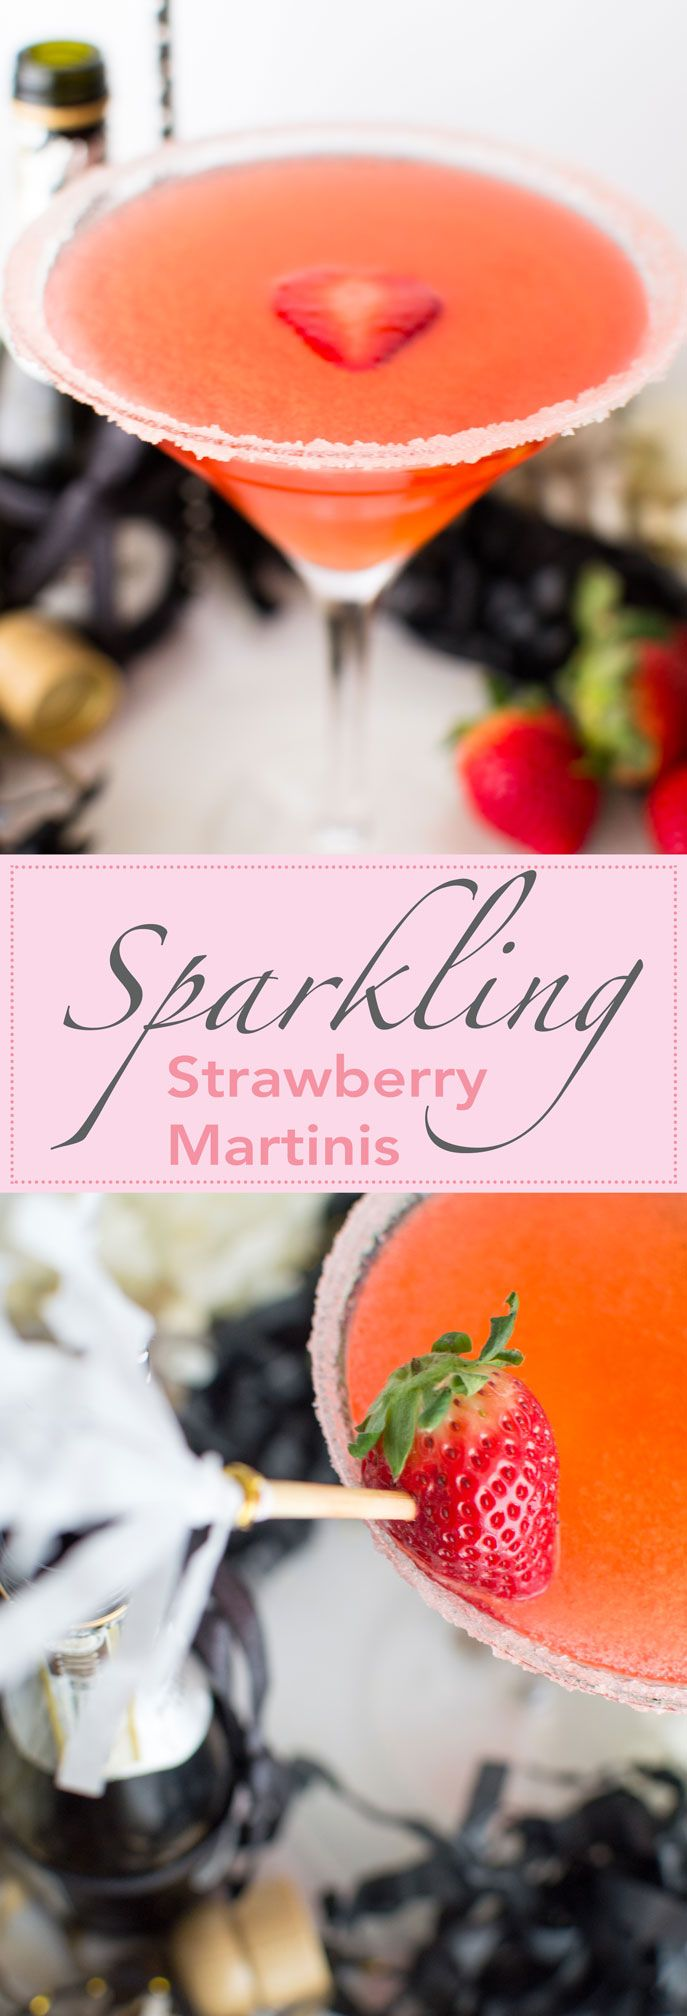 Muddled strawberries, vodka & champagne make this festive cocktail dangerously easy to enjoy!